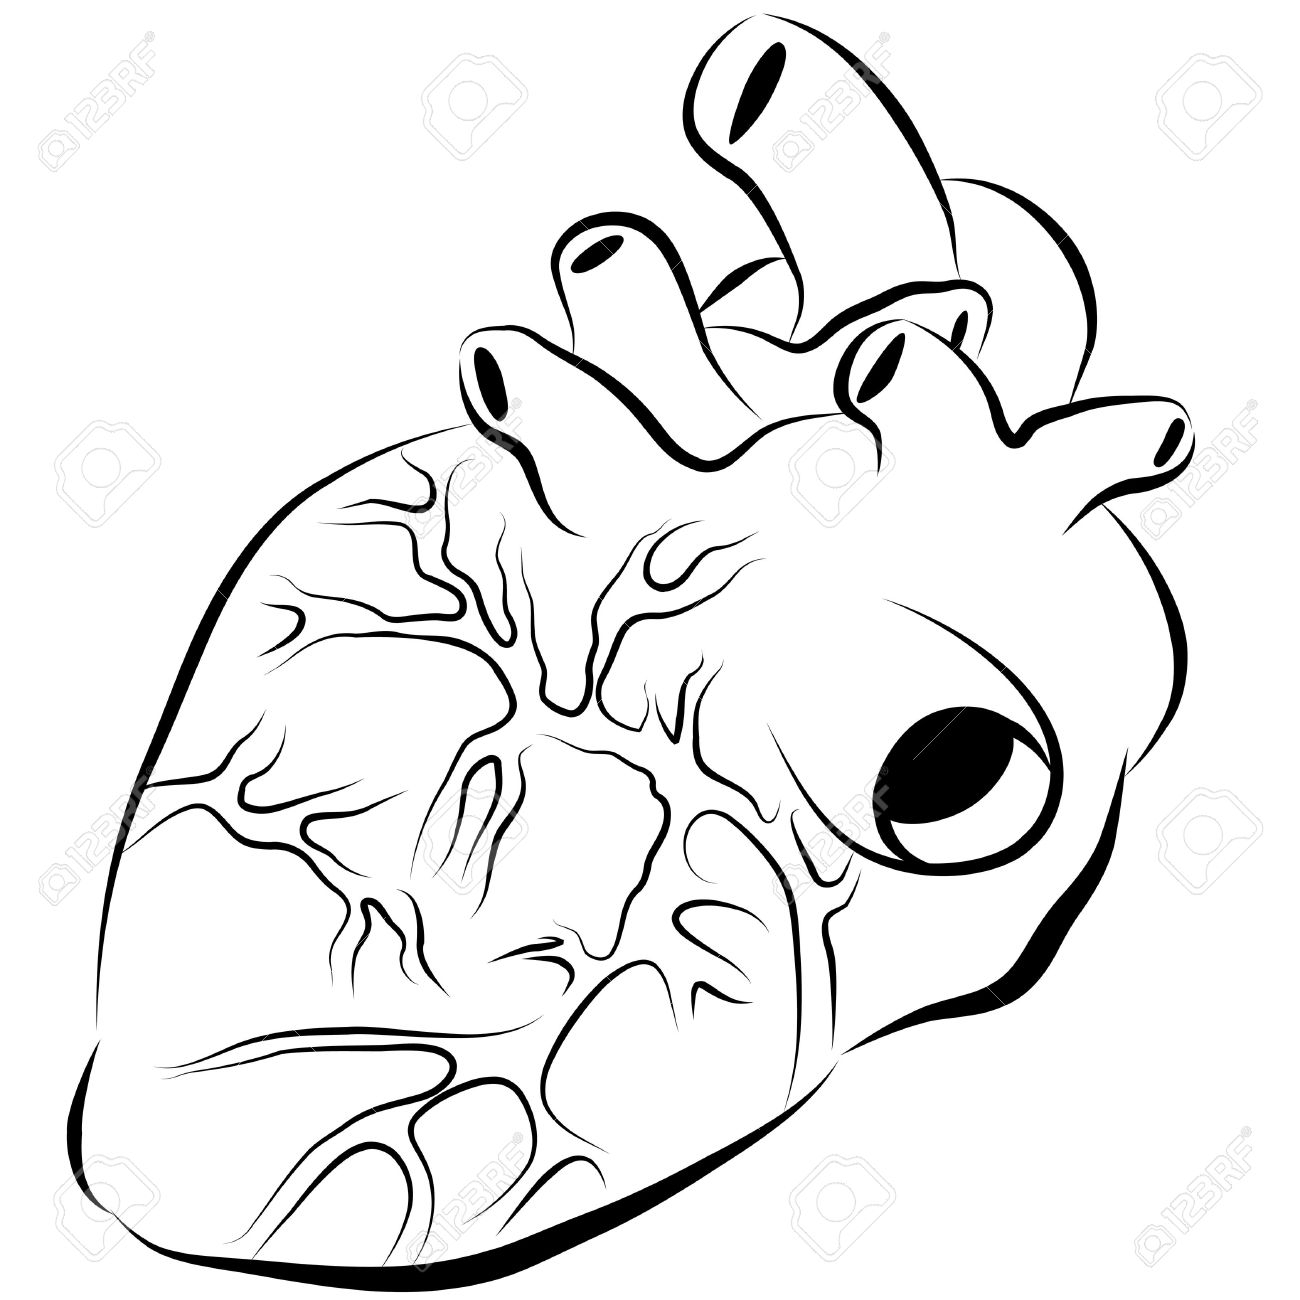 1300x1300 Simple Human Heart Drawing An Image Of A Human Heart Ink Drawing